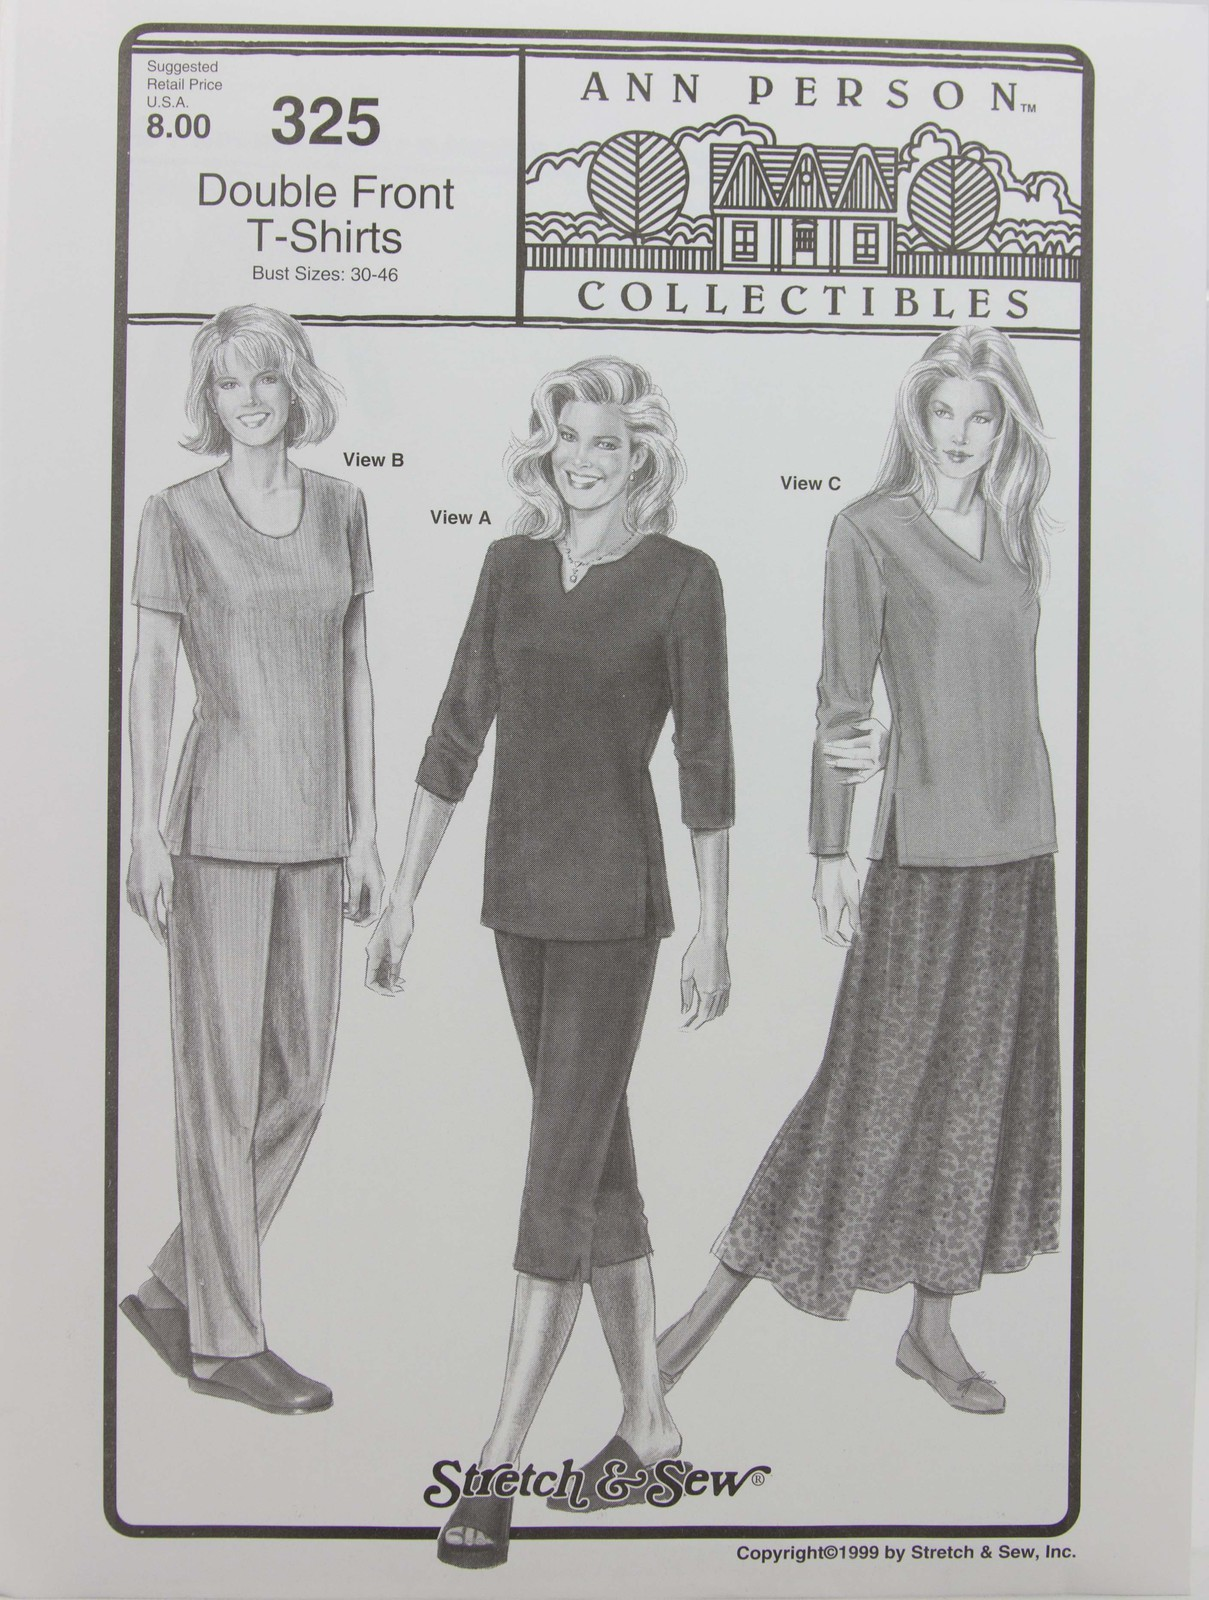 Stretch & Sew Sewing Pattern Ann Person Collectibles #325  Double Front T-Shirts